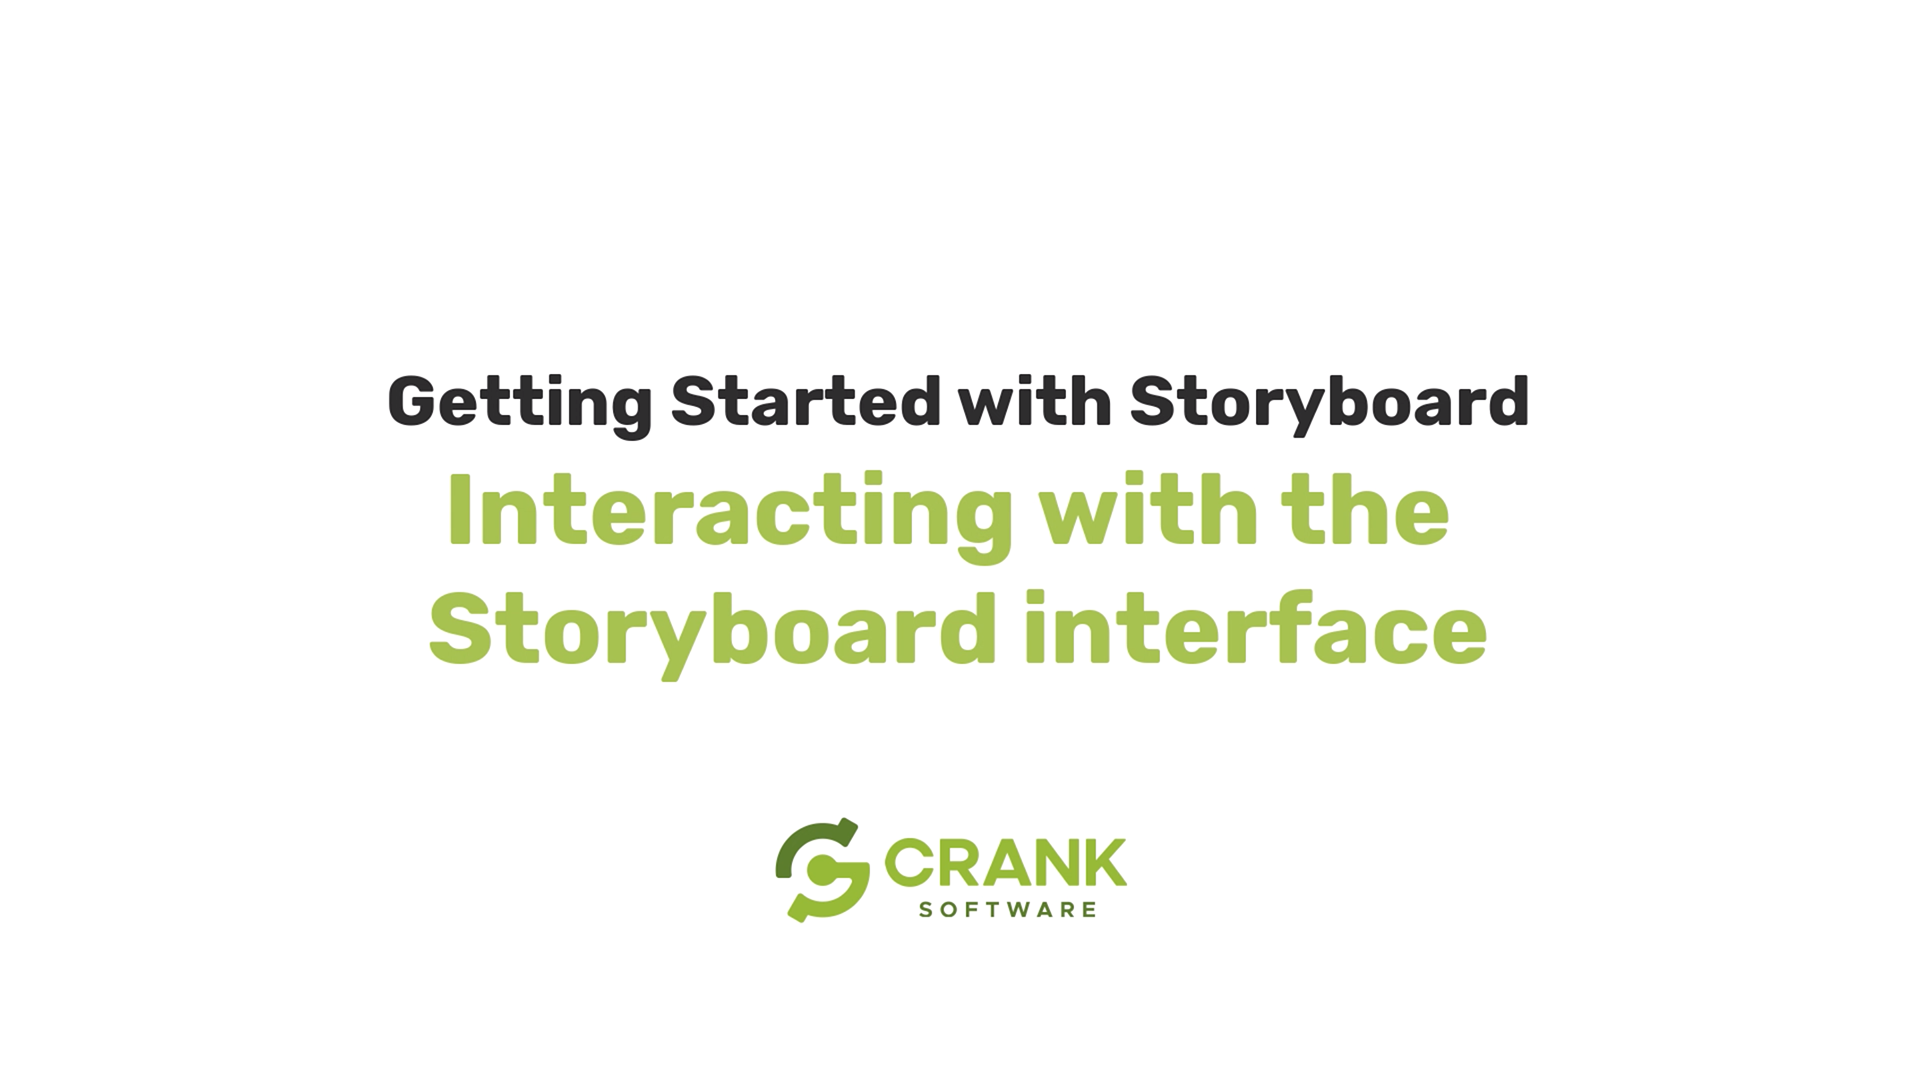 Crank-Storyboard-Interacting-with-the-Storyboard-interface